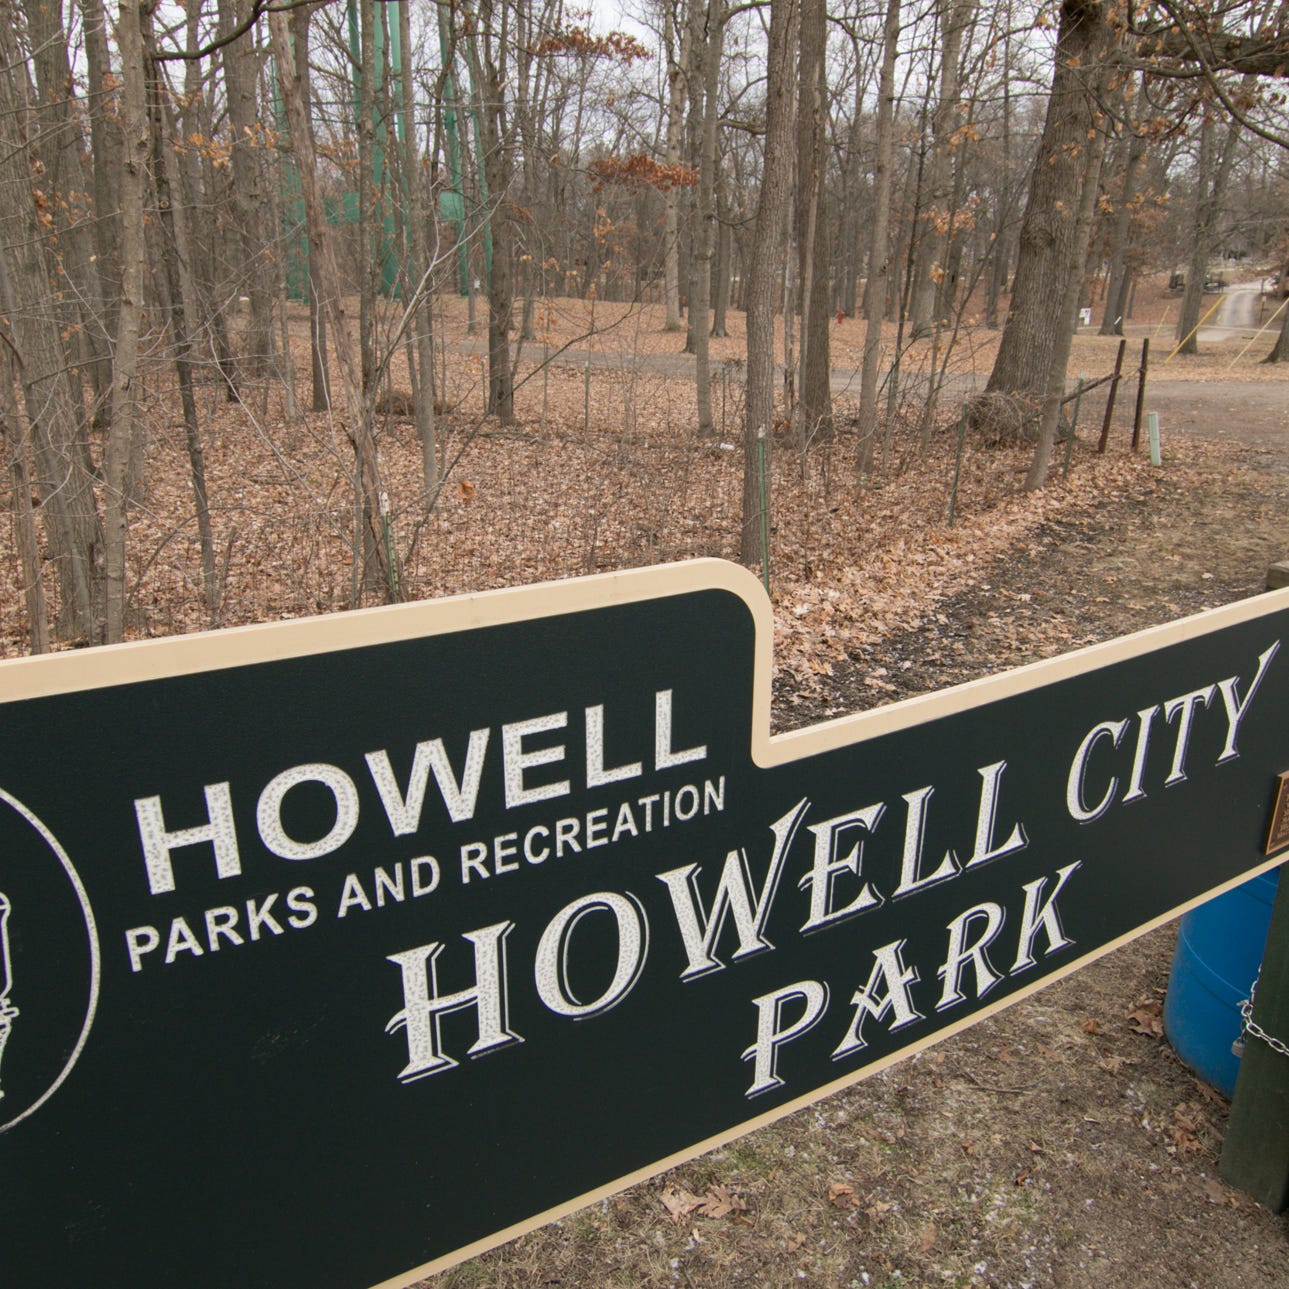 Howell park could be renamed after Scofield family